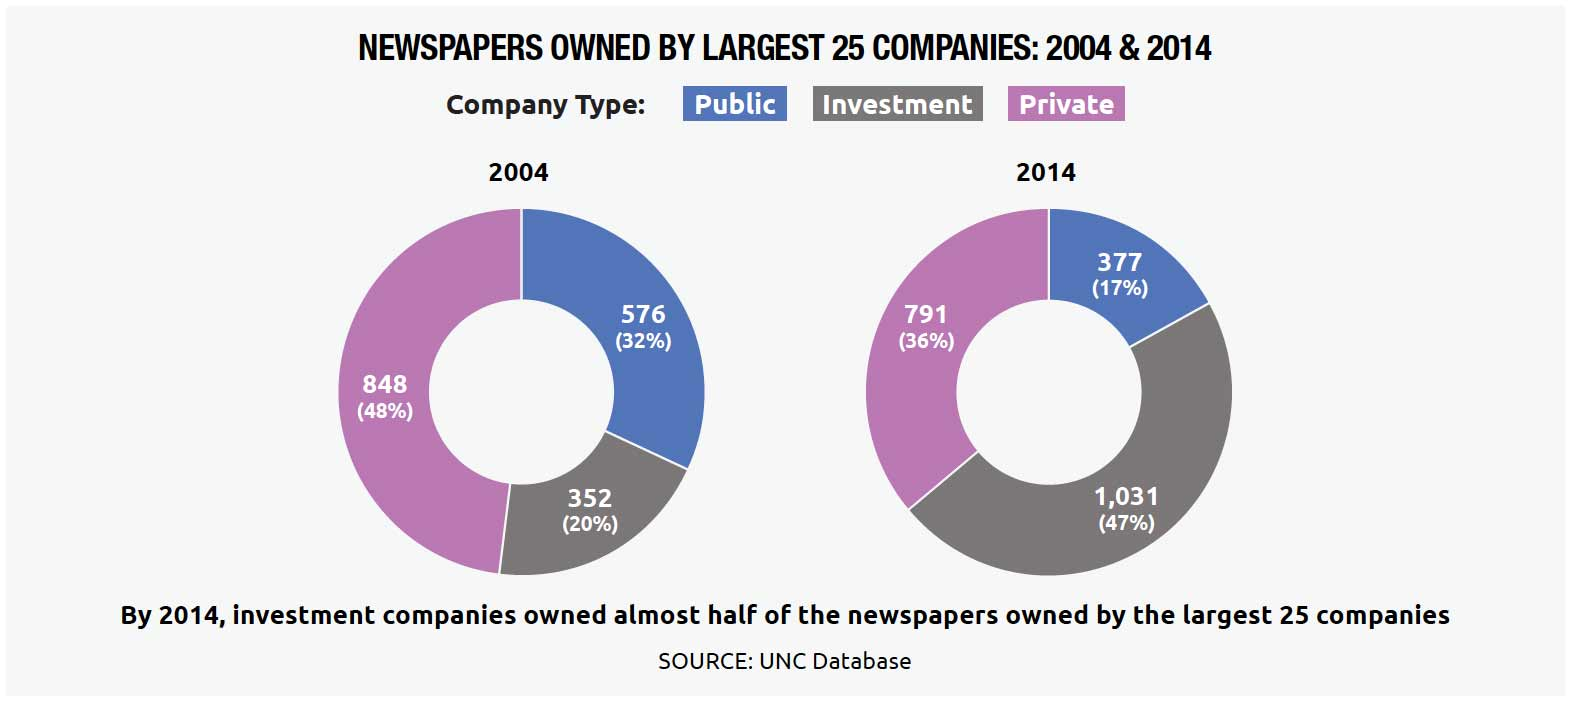 Newspapers Owned by the Largest 25 Companies (by Public, Private and Investment): 2004 & 2014